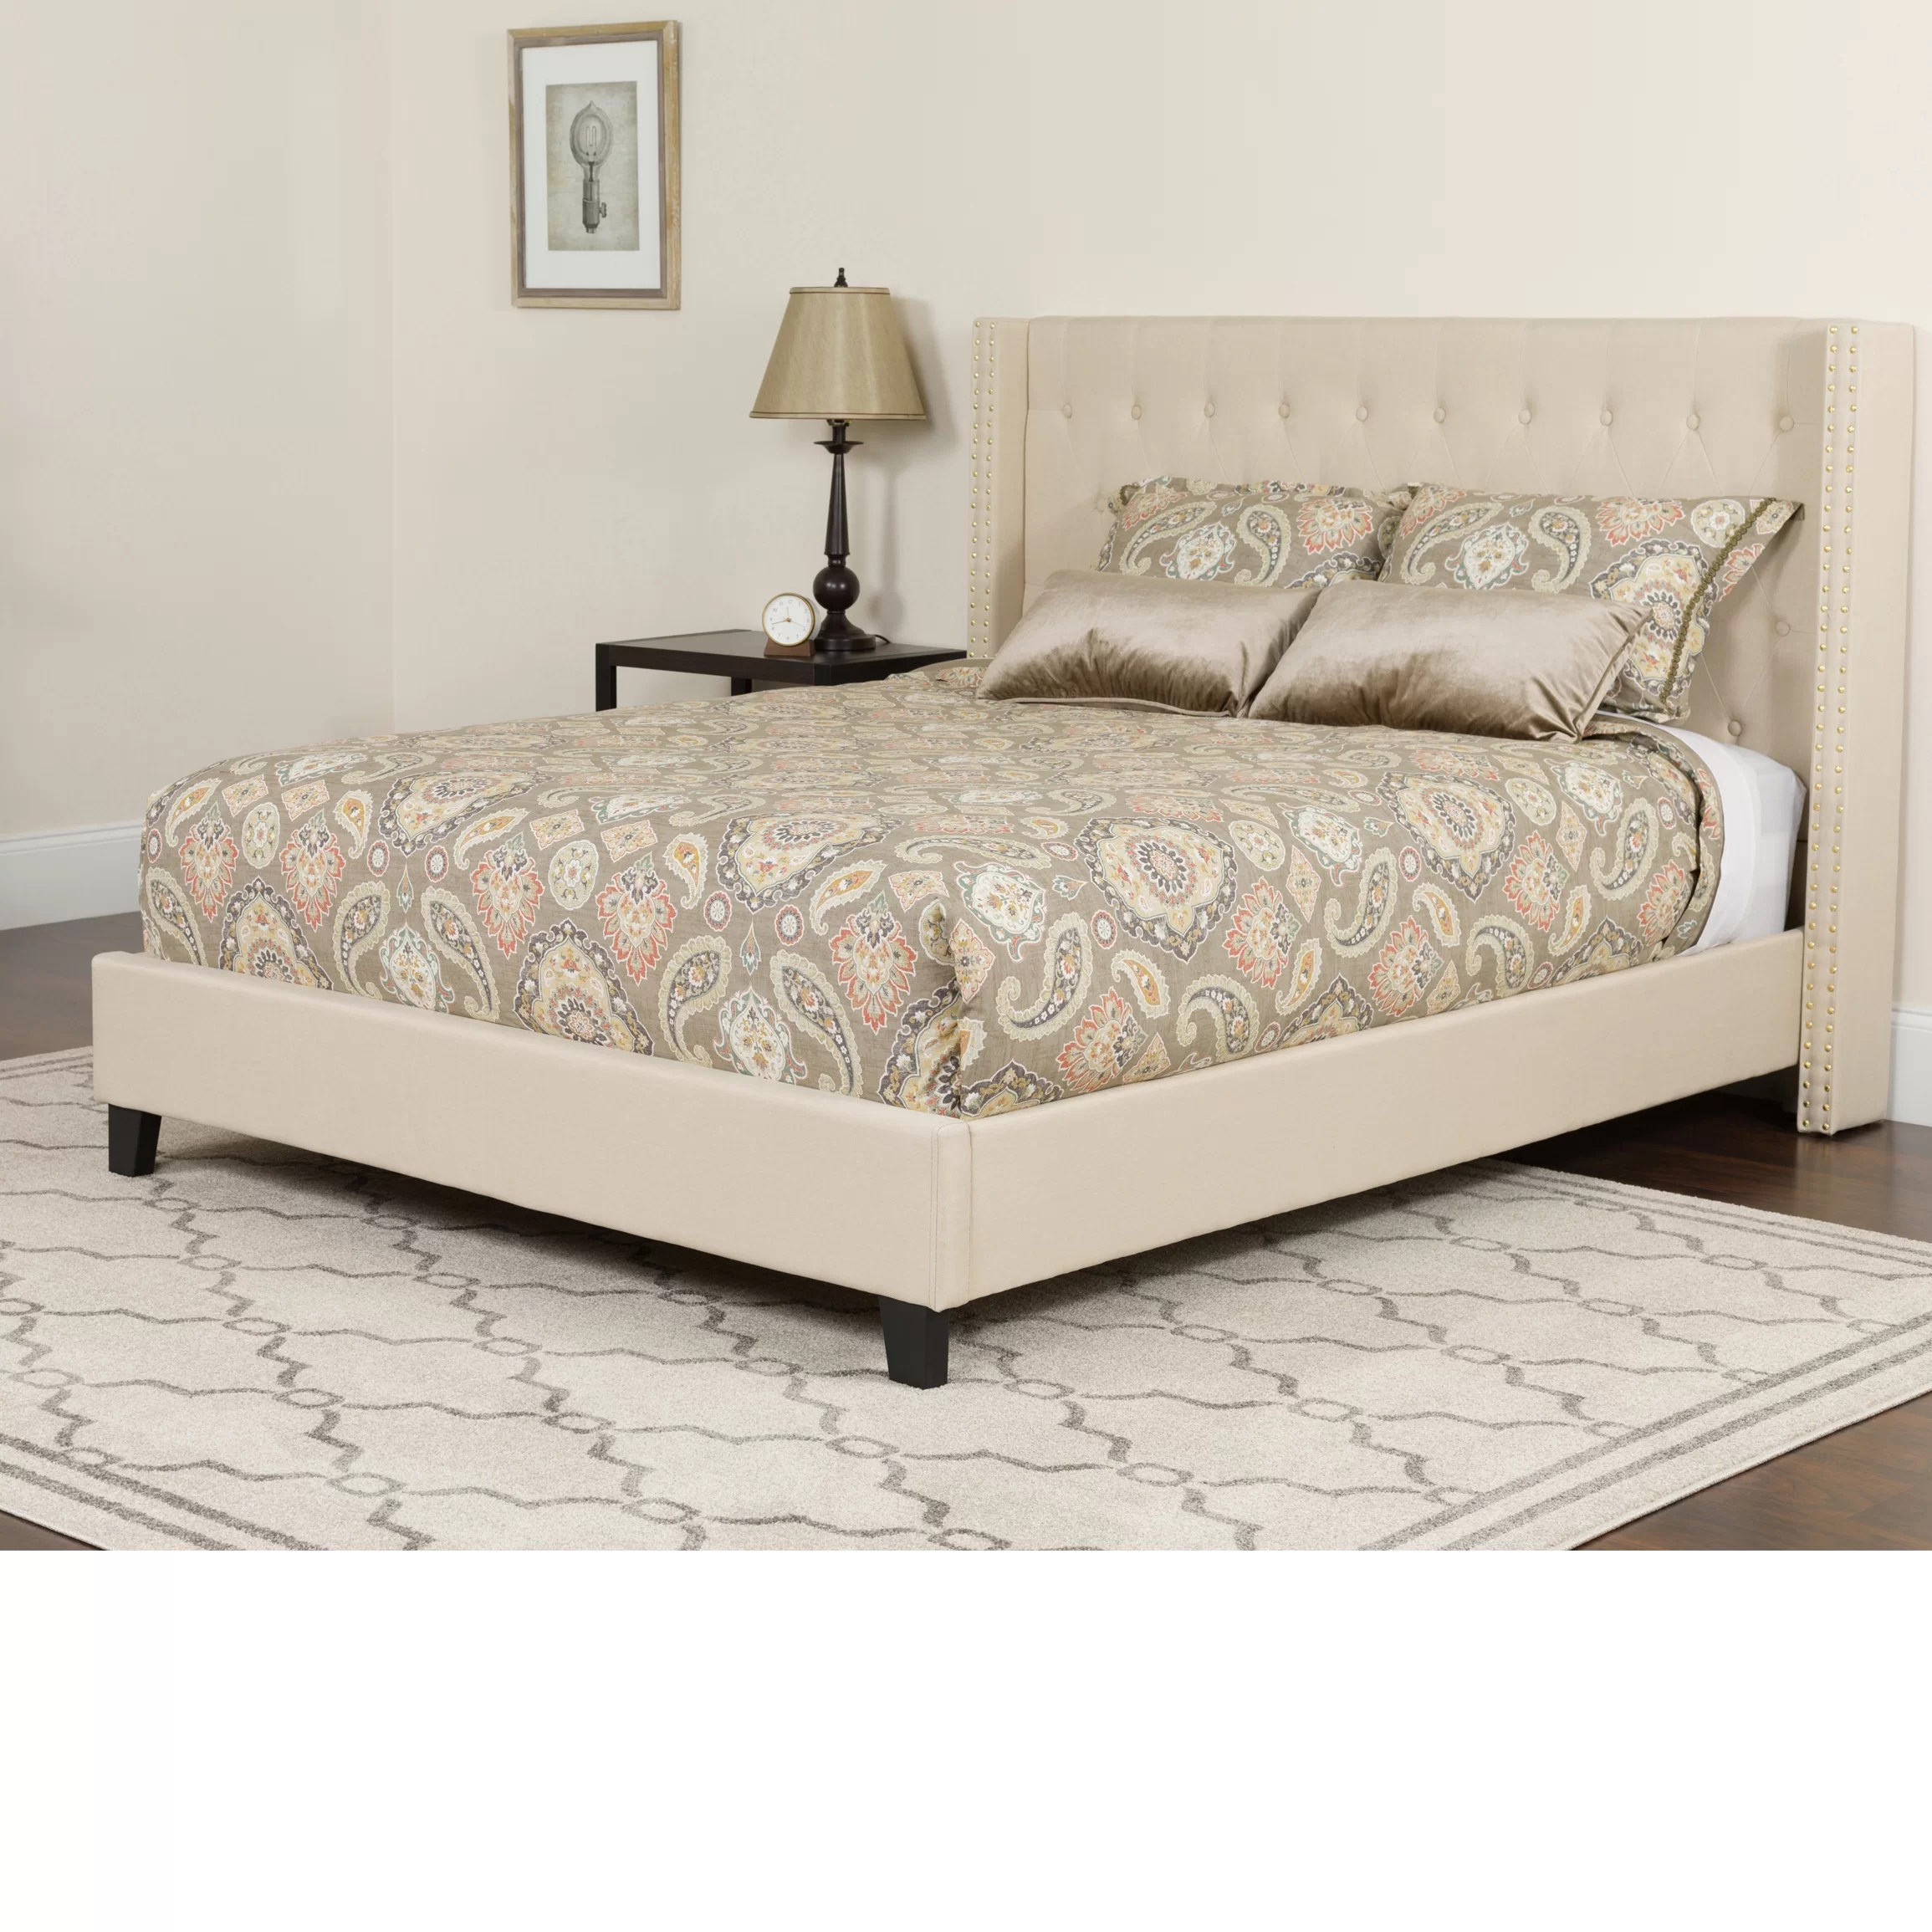 Mattress Platform Konieczny Tufted Upholstered Platform Bed With Mattress